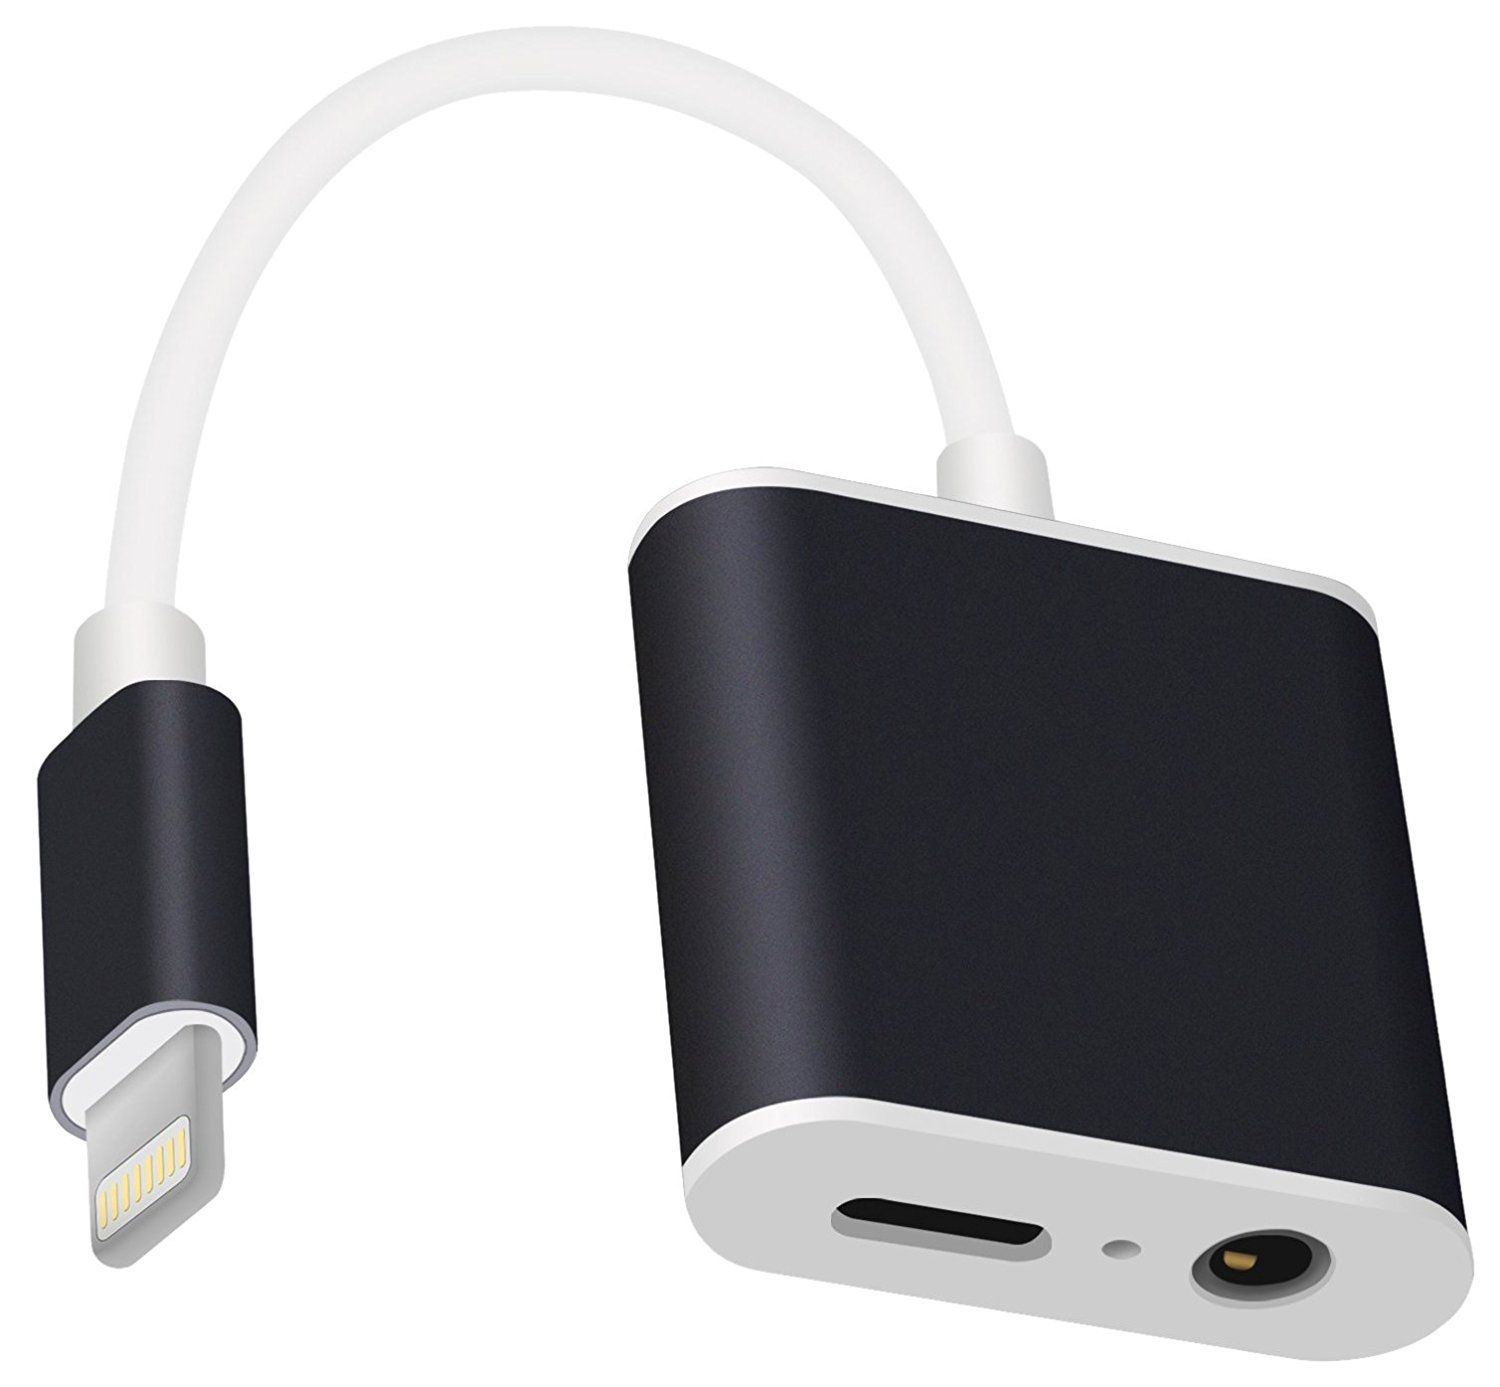 Highever Adapter With Mic Iphone 7 Headphones Adapter With